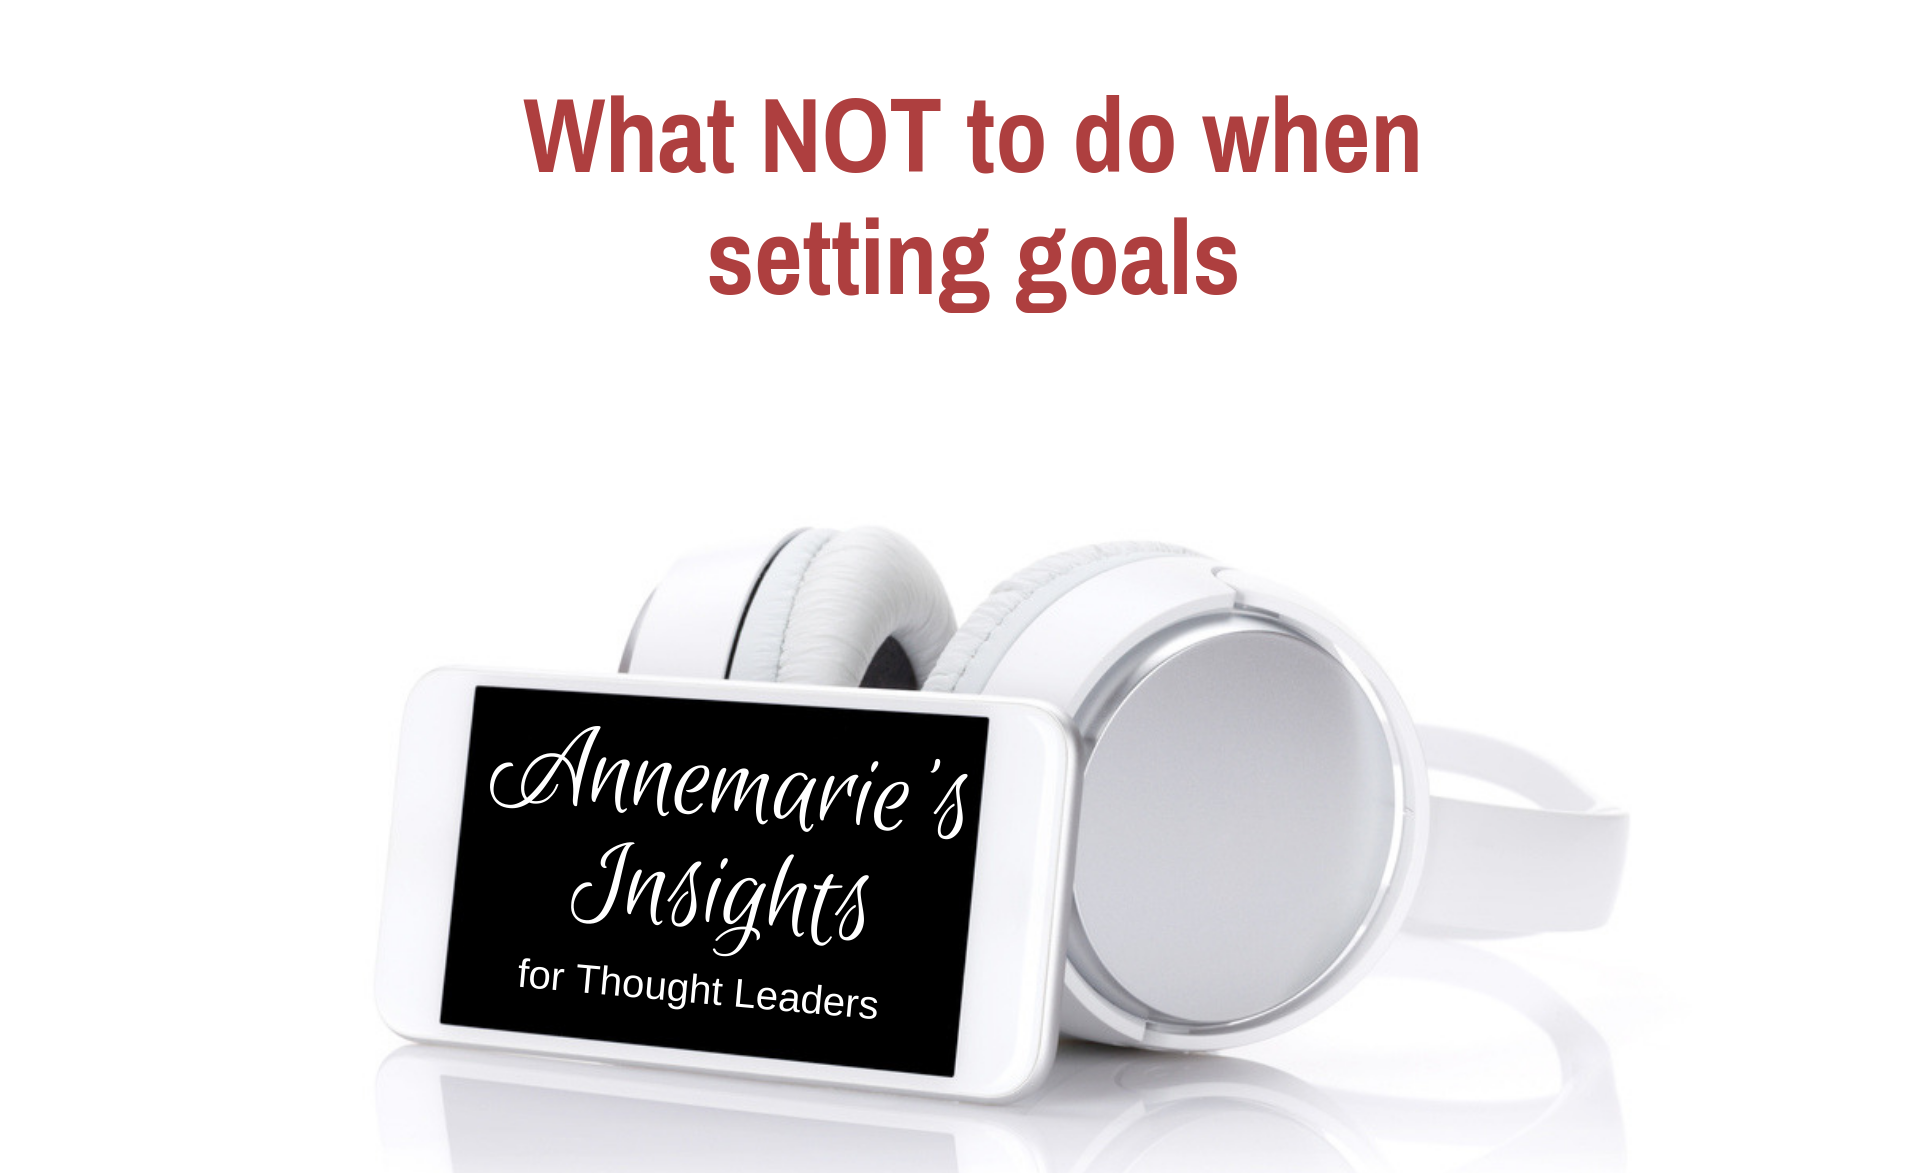 What NOT to do when setting goals